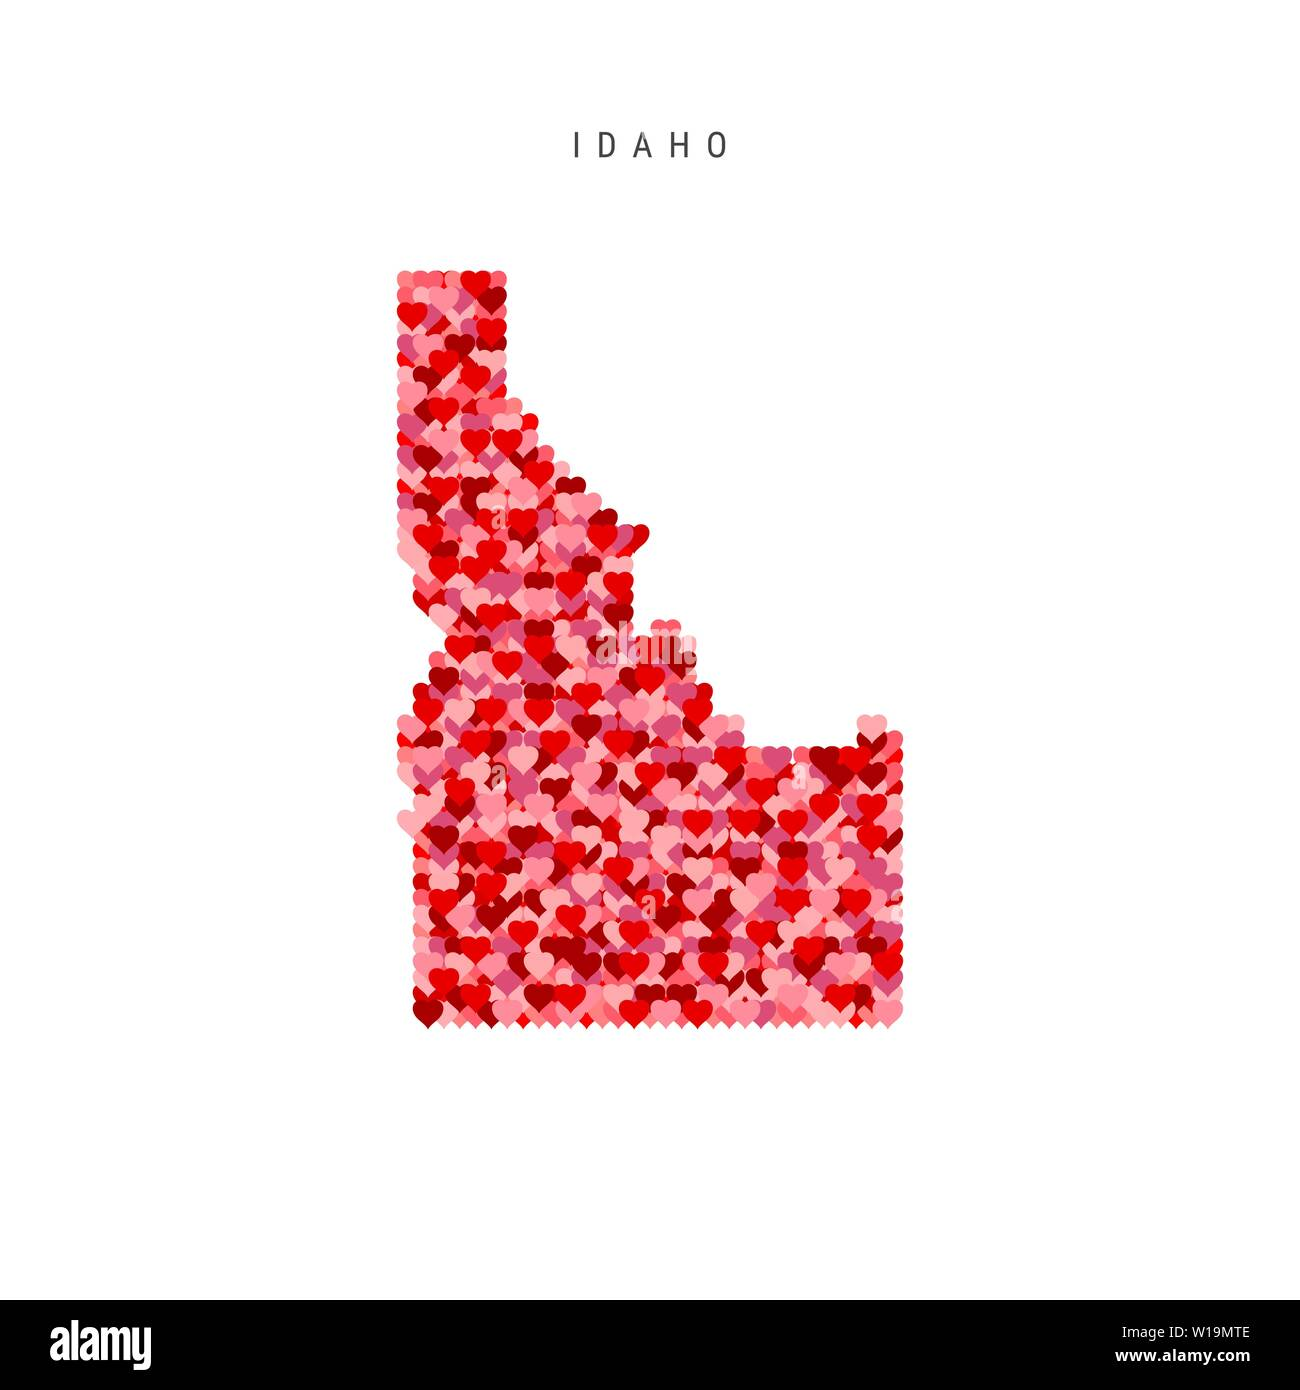 I Love Idaho. Red and Pink Hearts Pattern Vector Map of Idaho Isolated on White Background. - Stock Image